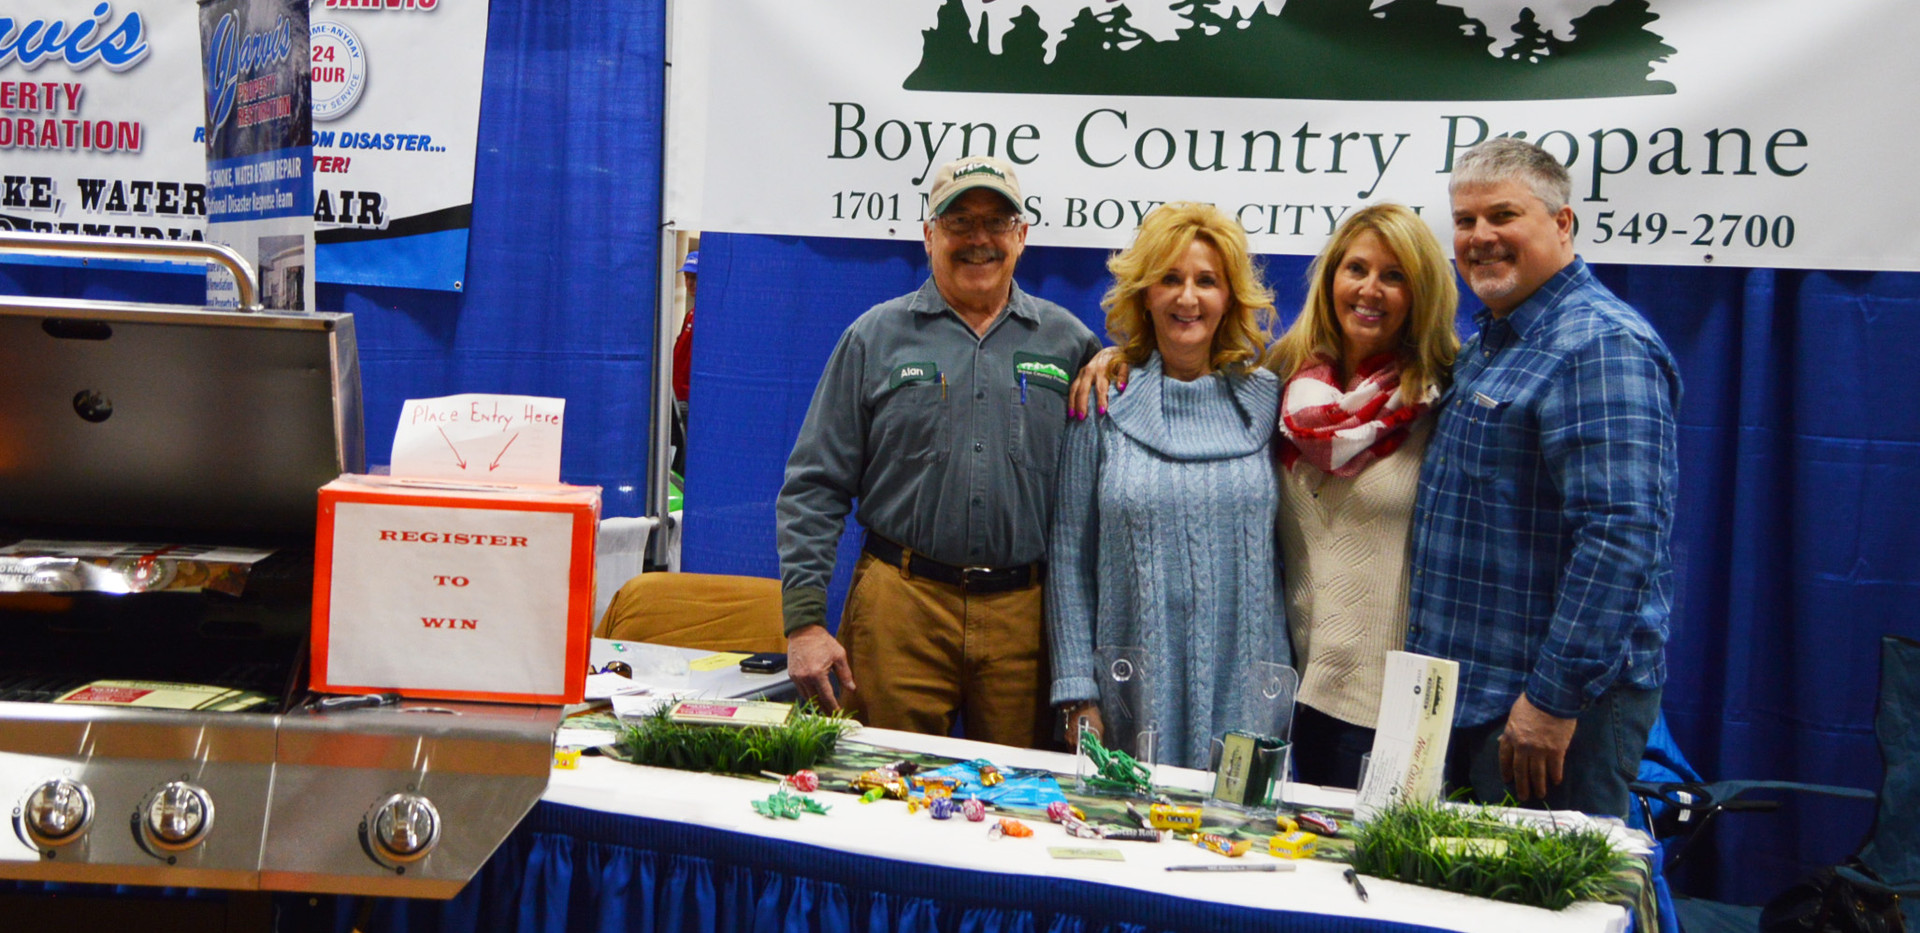 The team at Boyne Country Propane